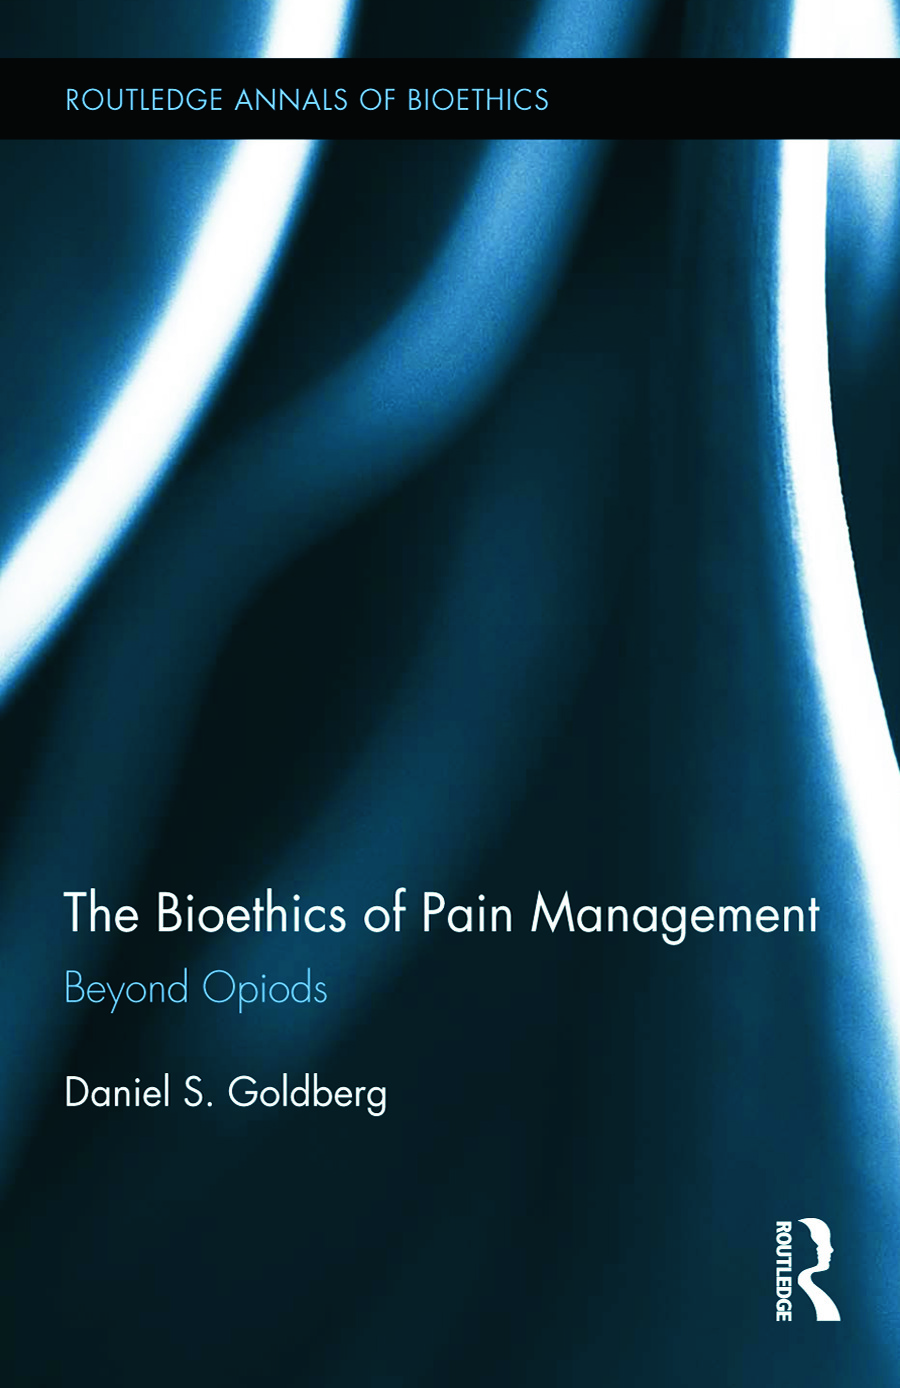 The Bioethics of Pain Management: Beyond Opioids book cover